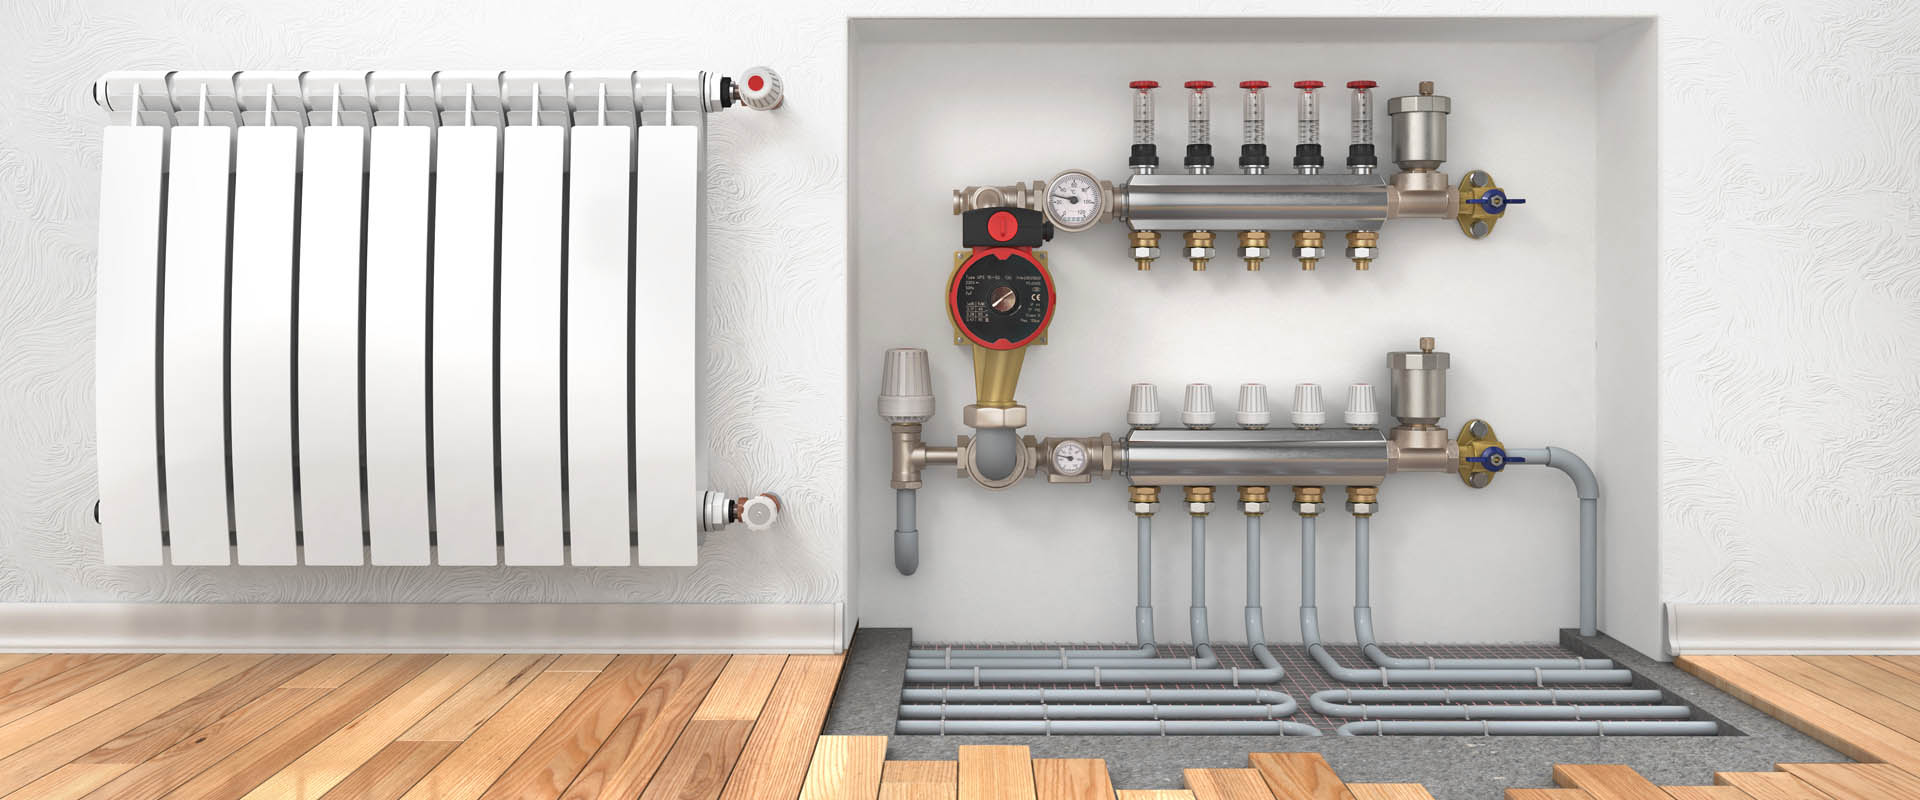 Heating concept. Underfloor heating with collector in the room. Concept of technology heating. 3d illustration